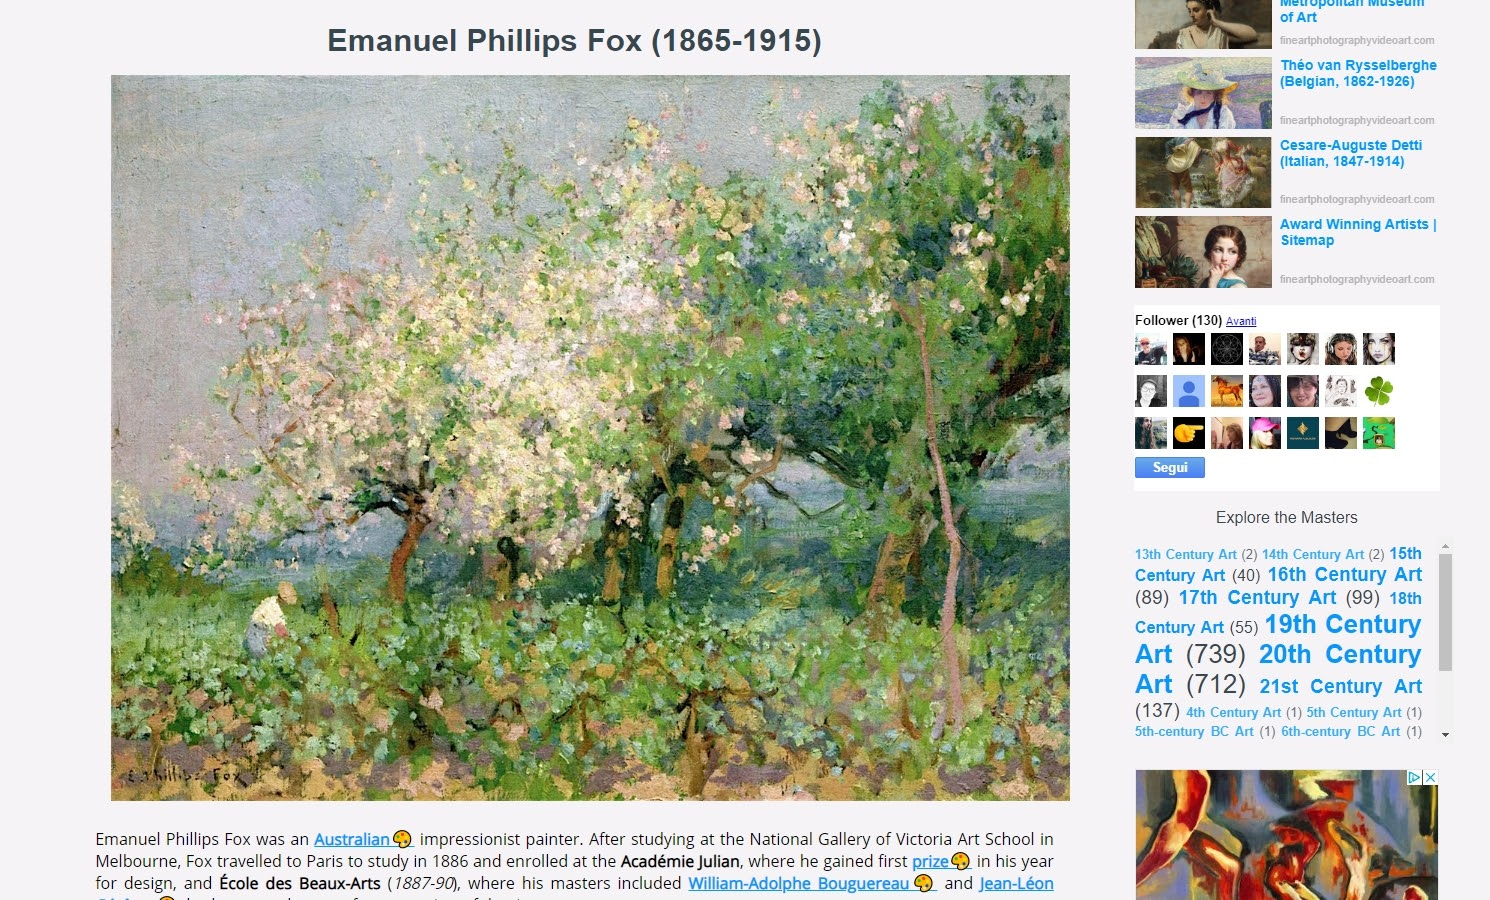 Emanuel Phillips Fox (1865-1915)